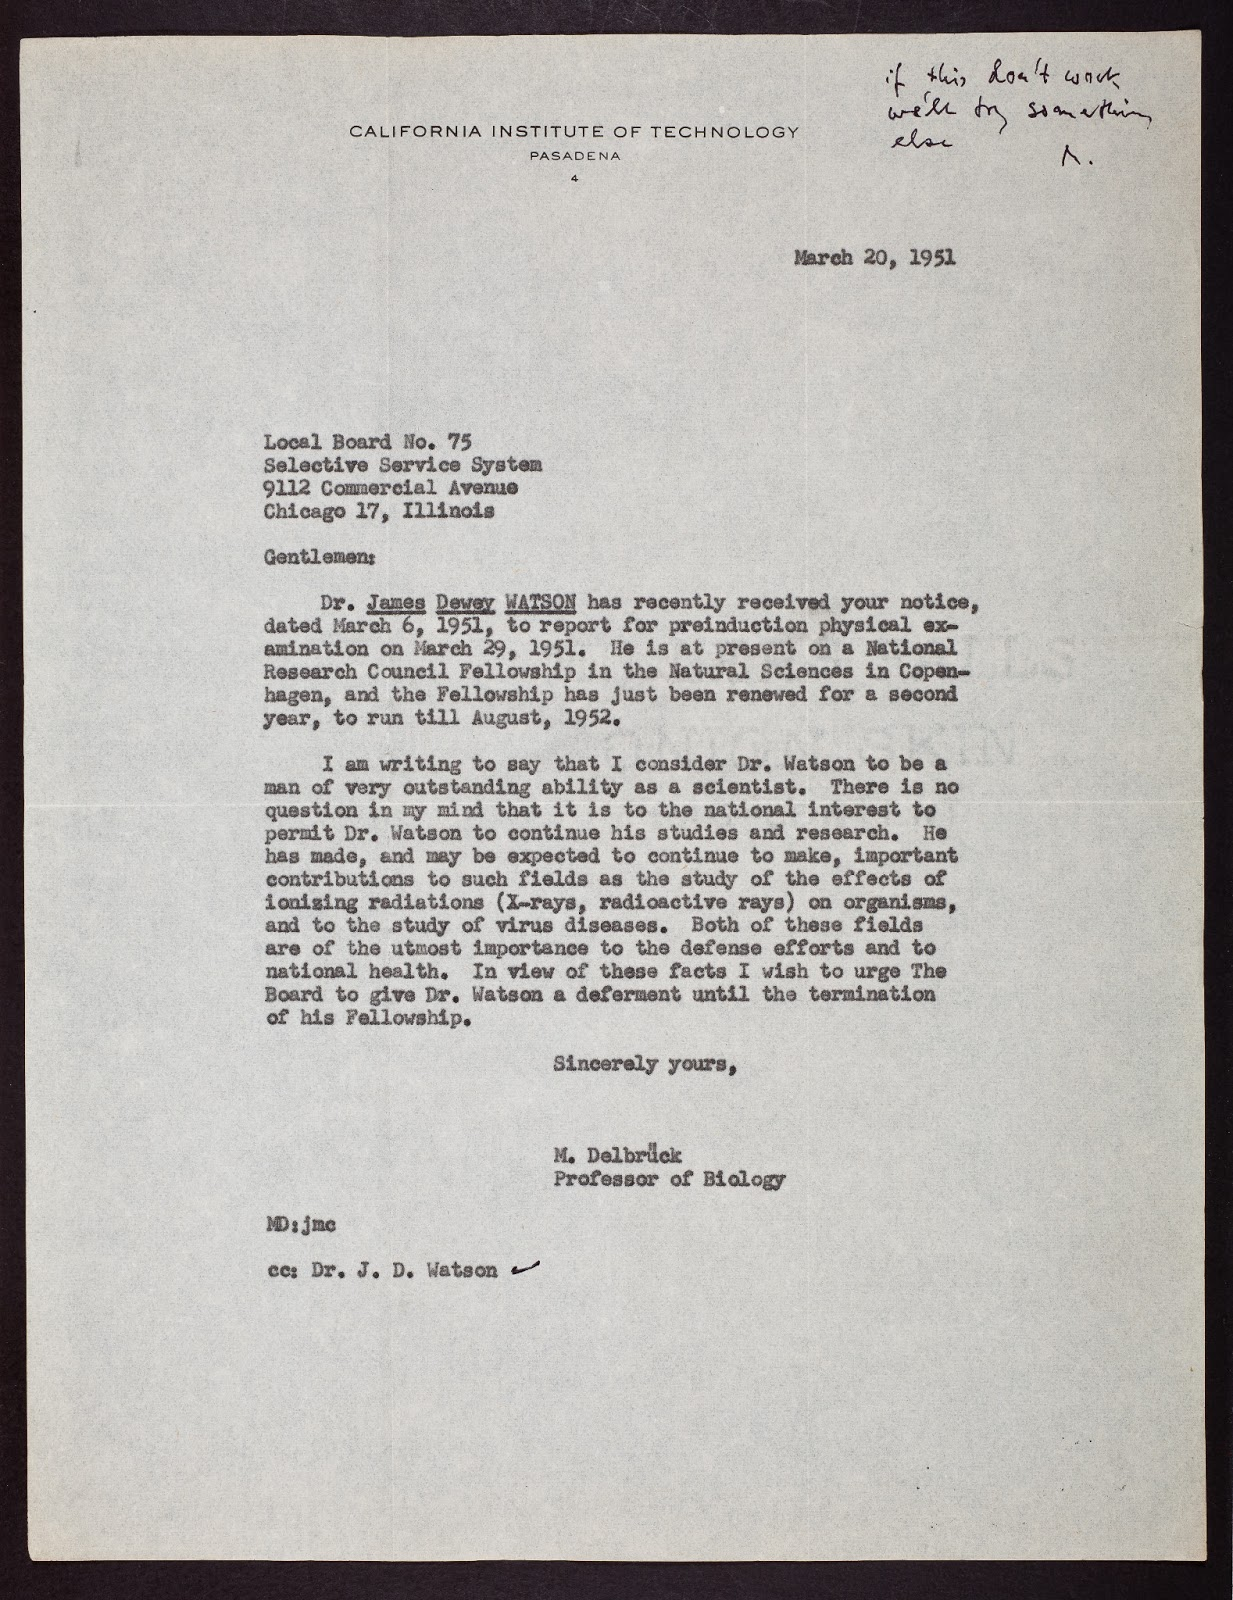 selective service system letter the cshl archives dna letters 1951 1953 24789